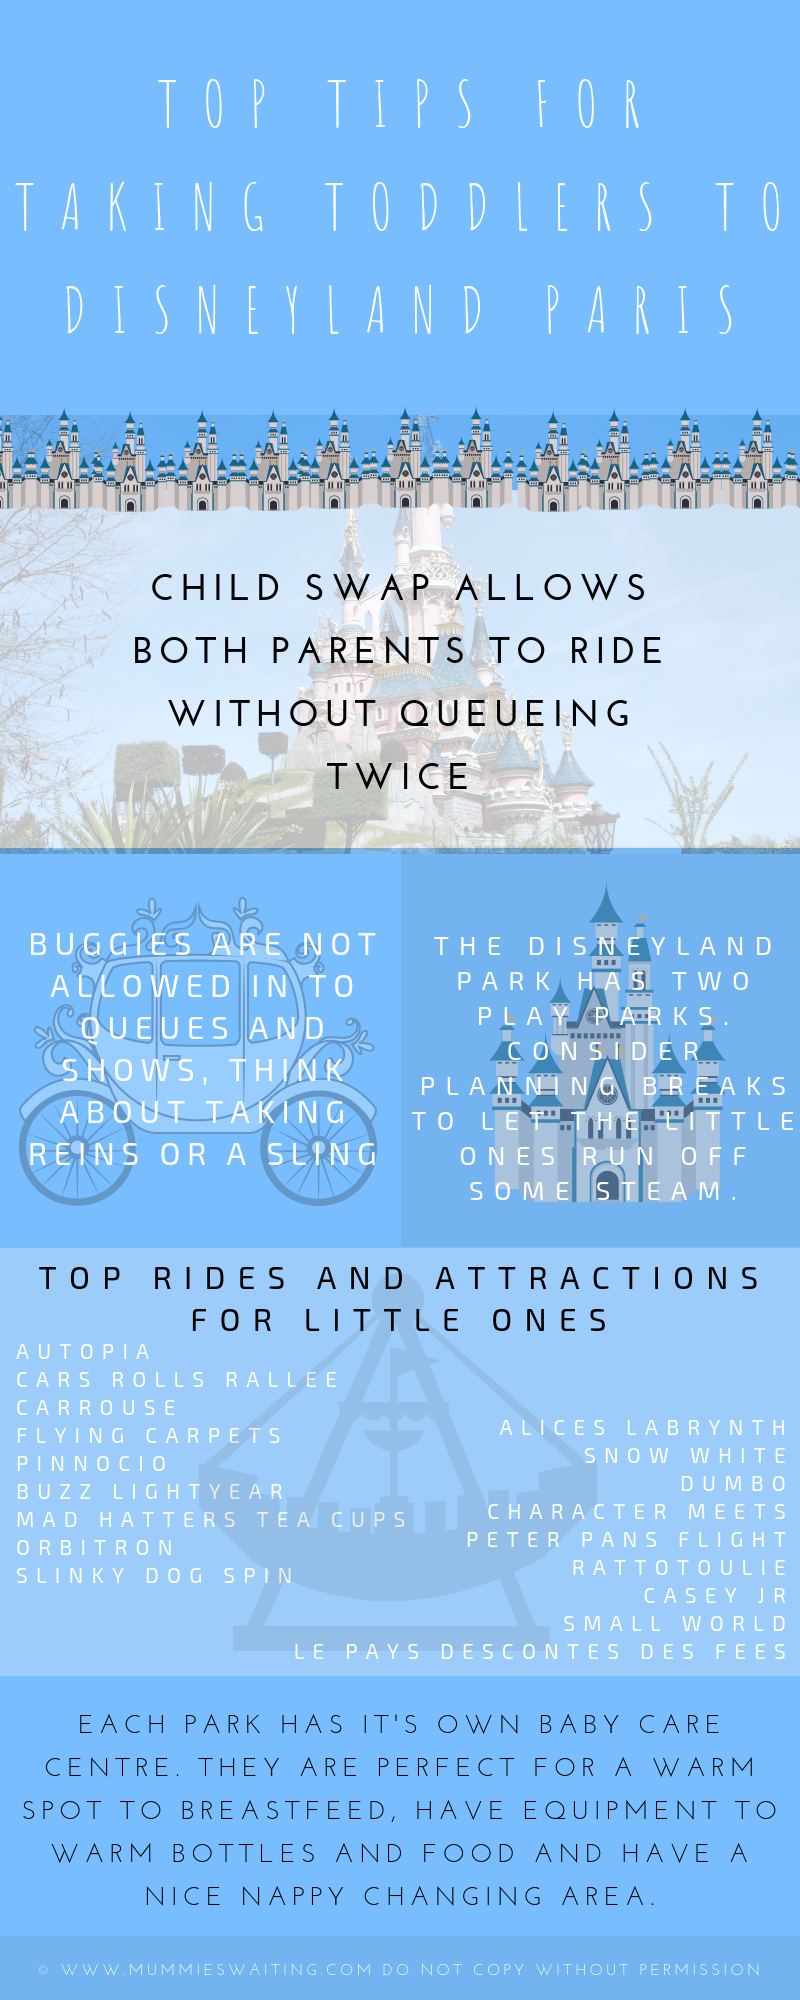 Top tips for taking toddlers to Disneyland Paris Infographic! Let's chat child swap, attractions and so much more!